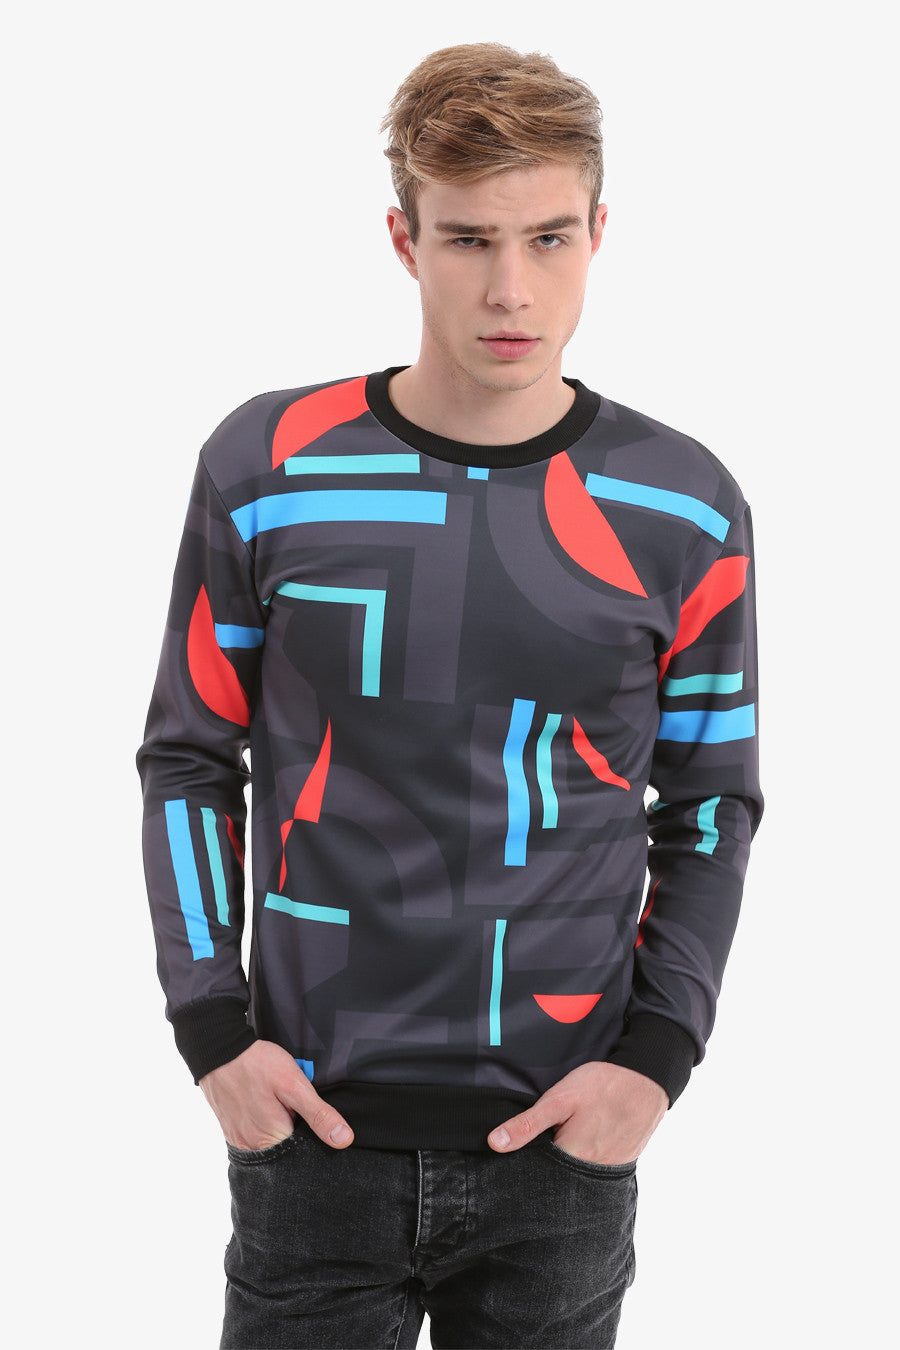 Geometric Shapes Sweatshirt